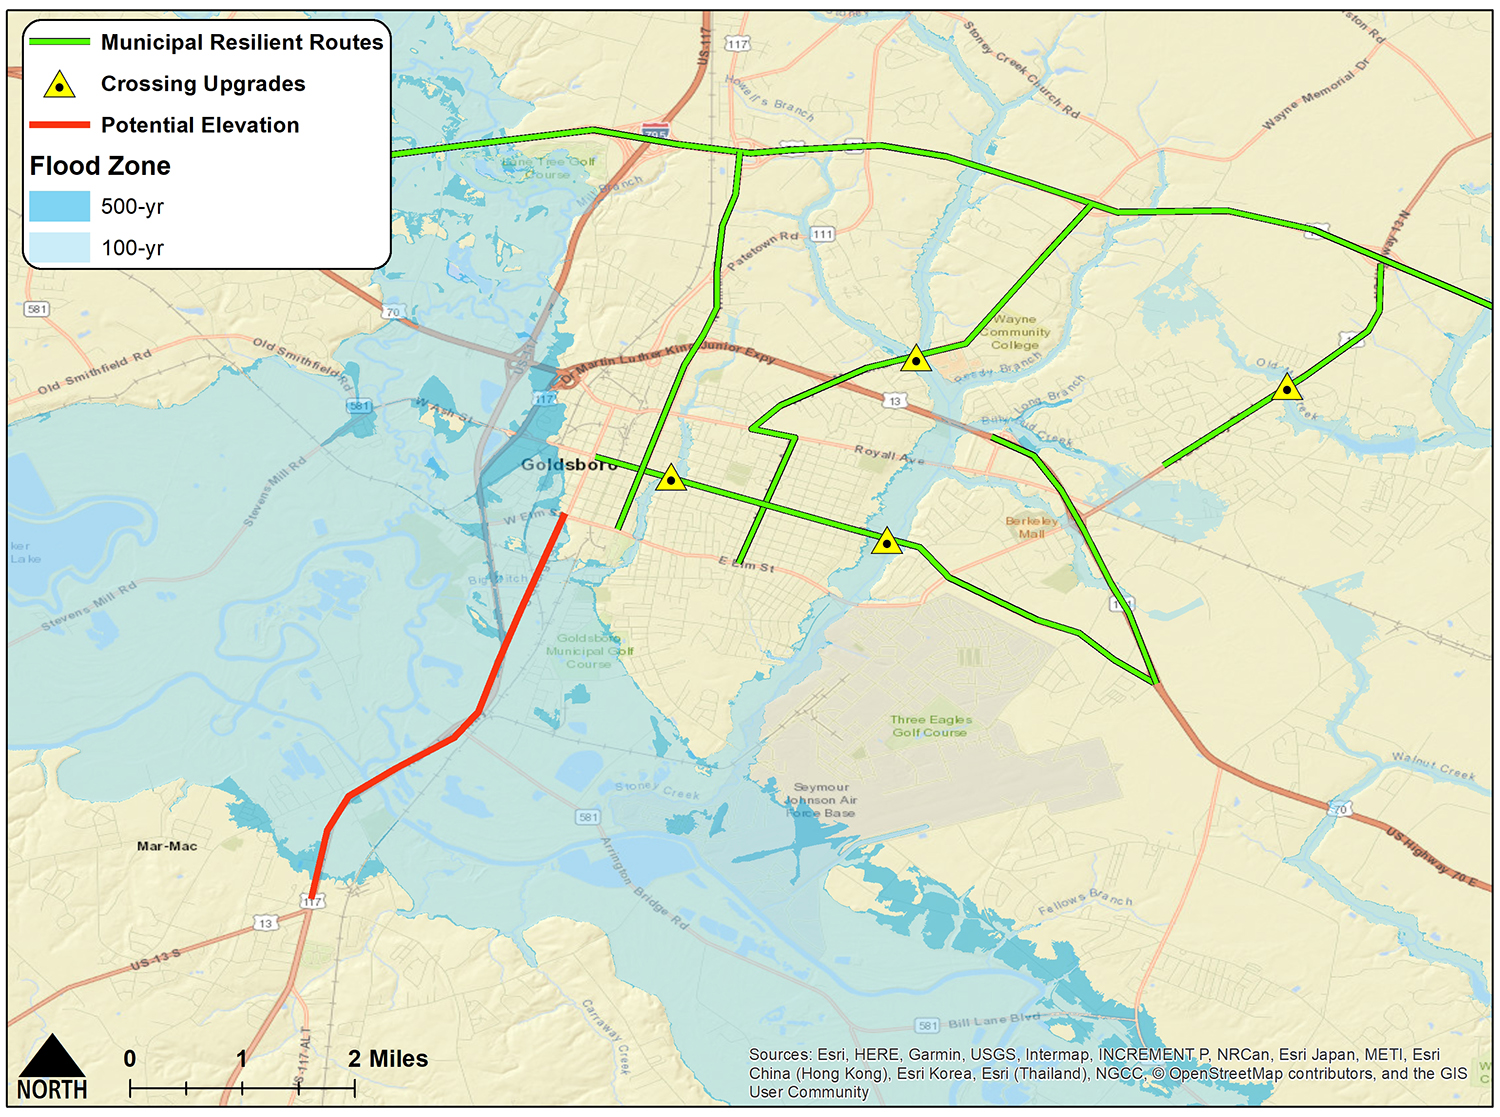 Example of resilient routes in Goldsboro. Credit: N.C. Sea Grant/NC State Department of Biological & Agricultural Engineering